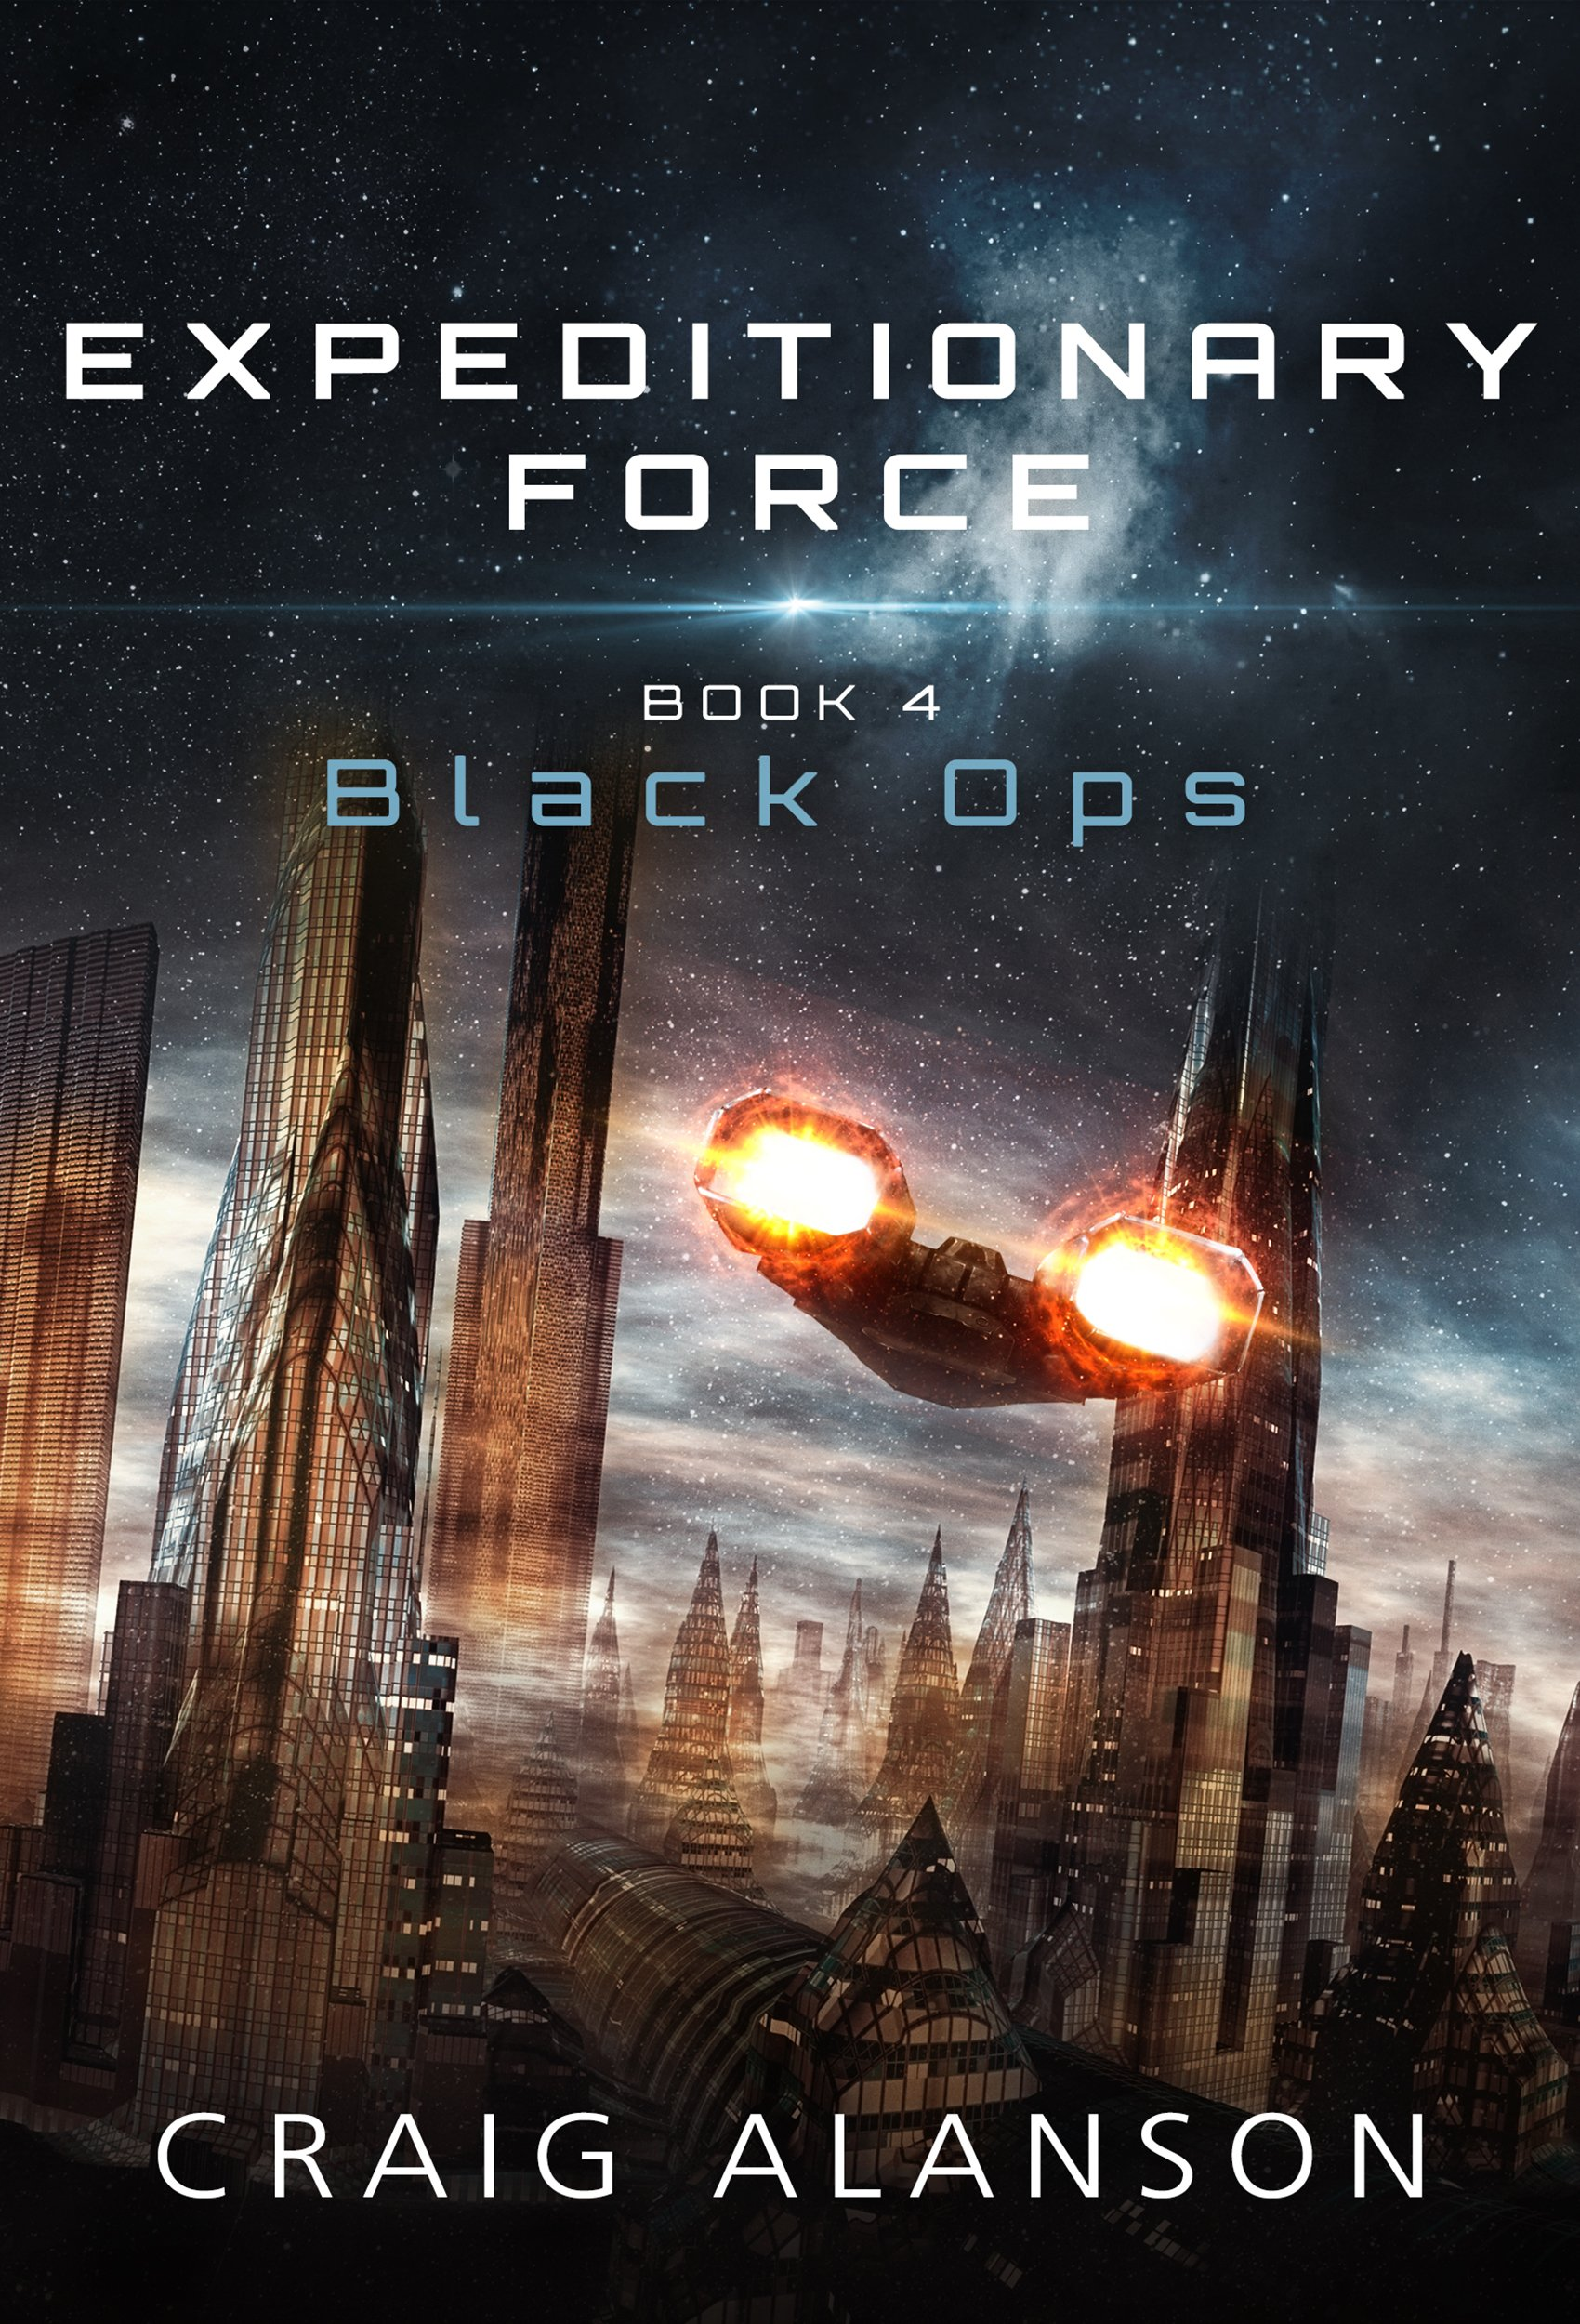 Black Ops (Expeditionary Force Book 4)